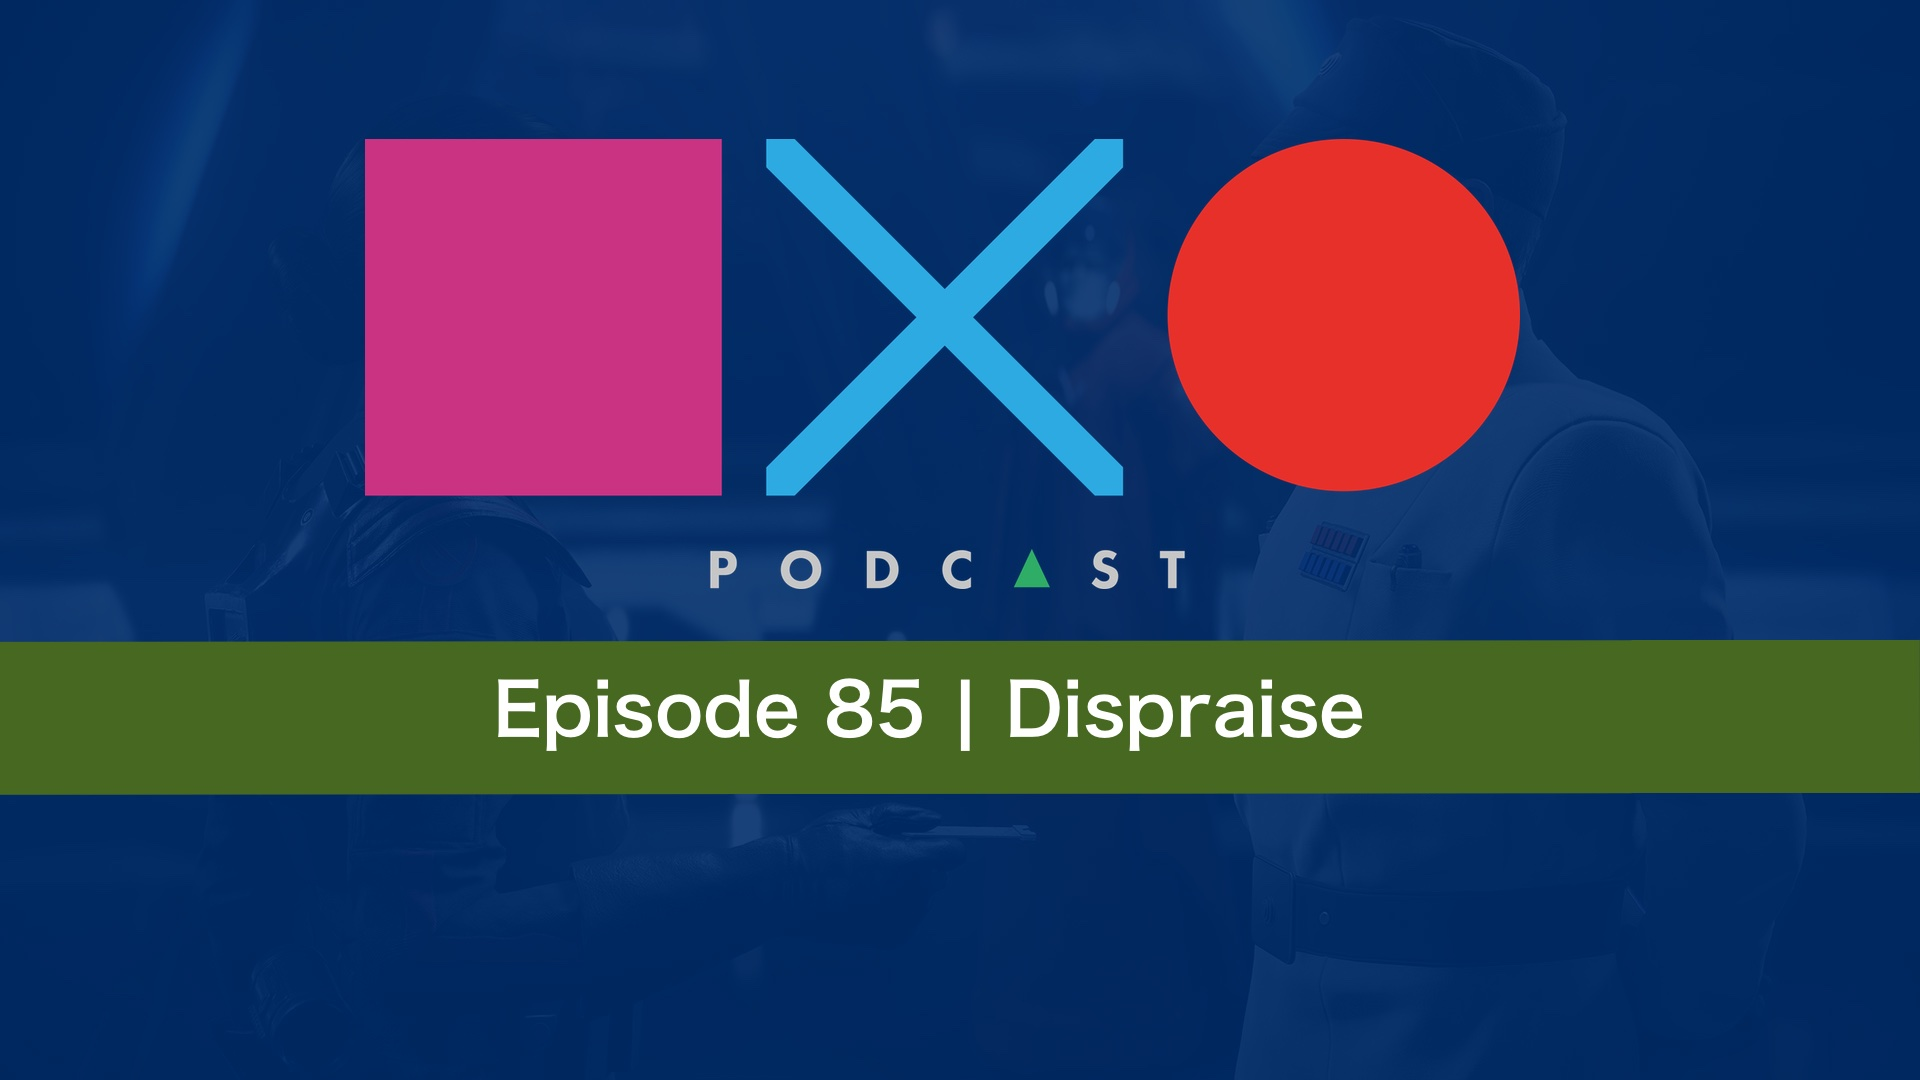 SquareXO | PlayStation Podcast | Epsiode 85 – Dispraise